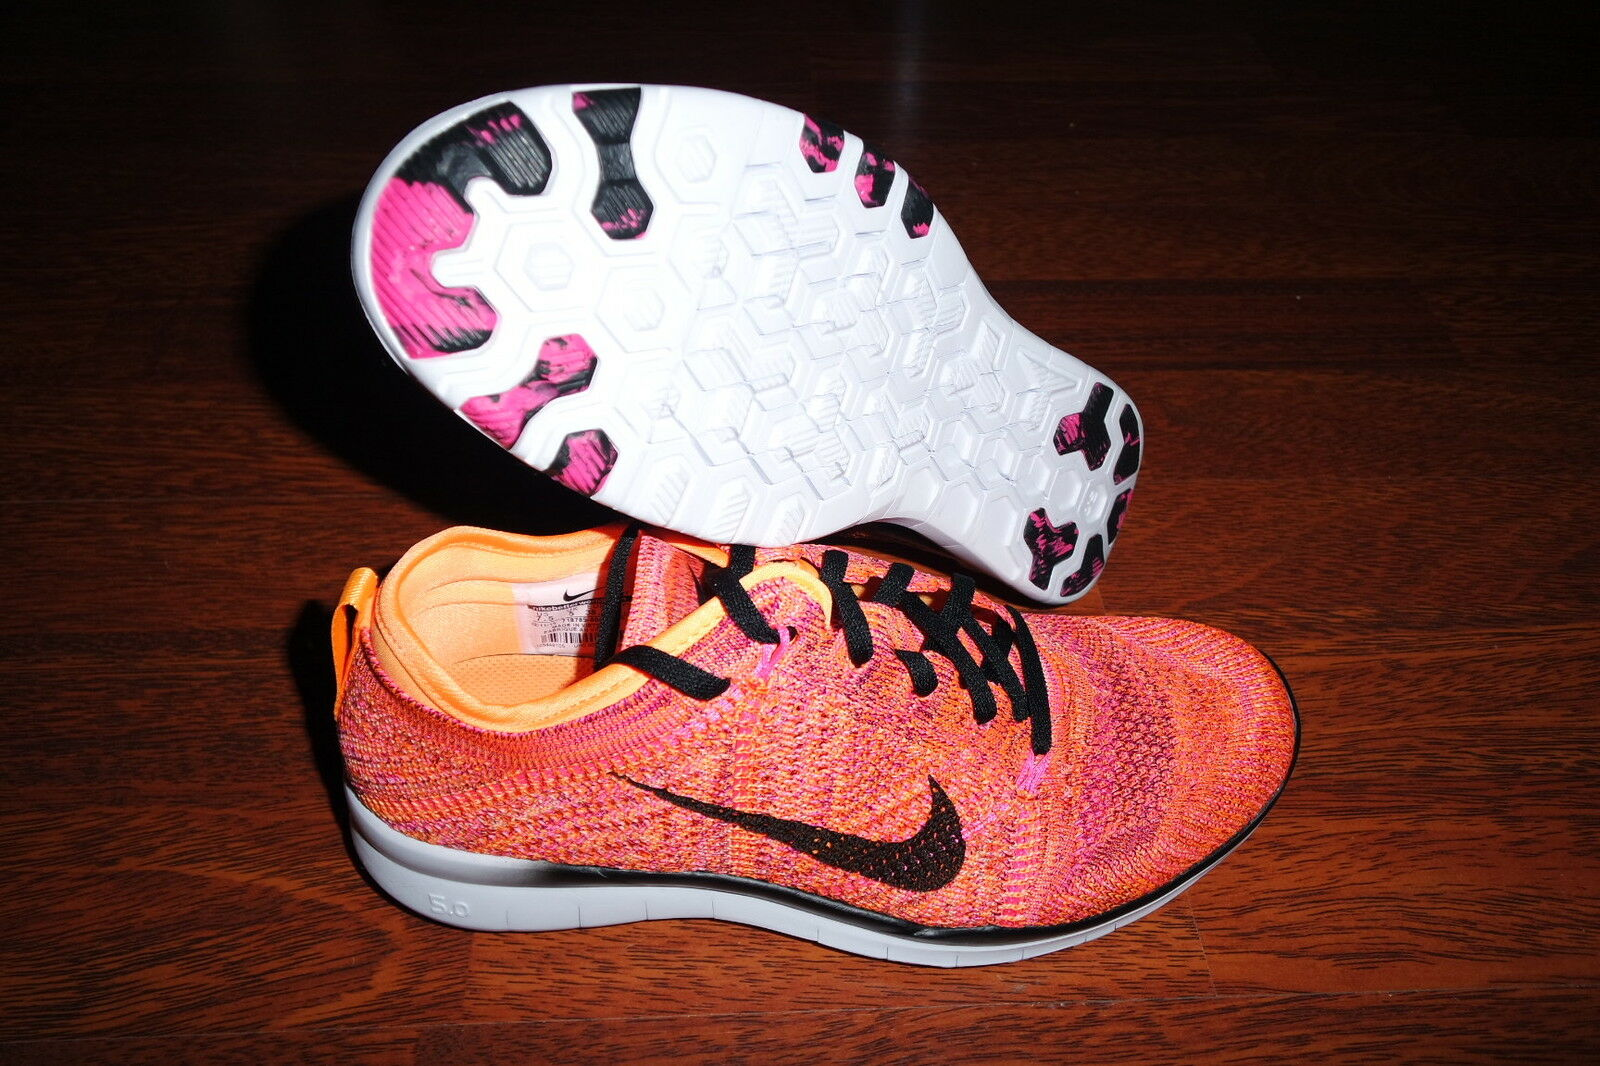 Nike Womens Free TR Flyknit Running BRIGHT CITRUS/PINK 718785 800 SZ 7.5